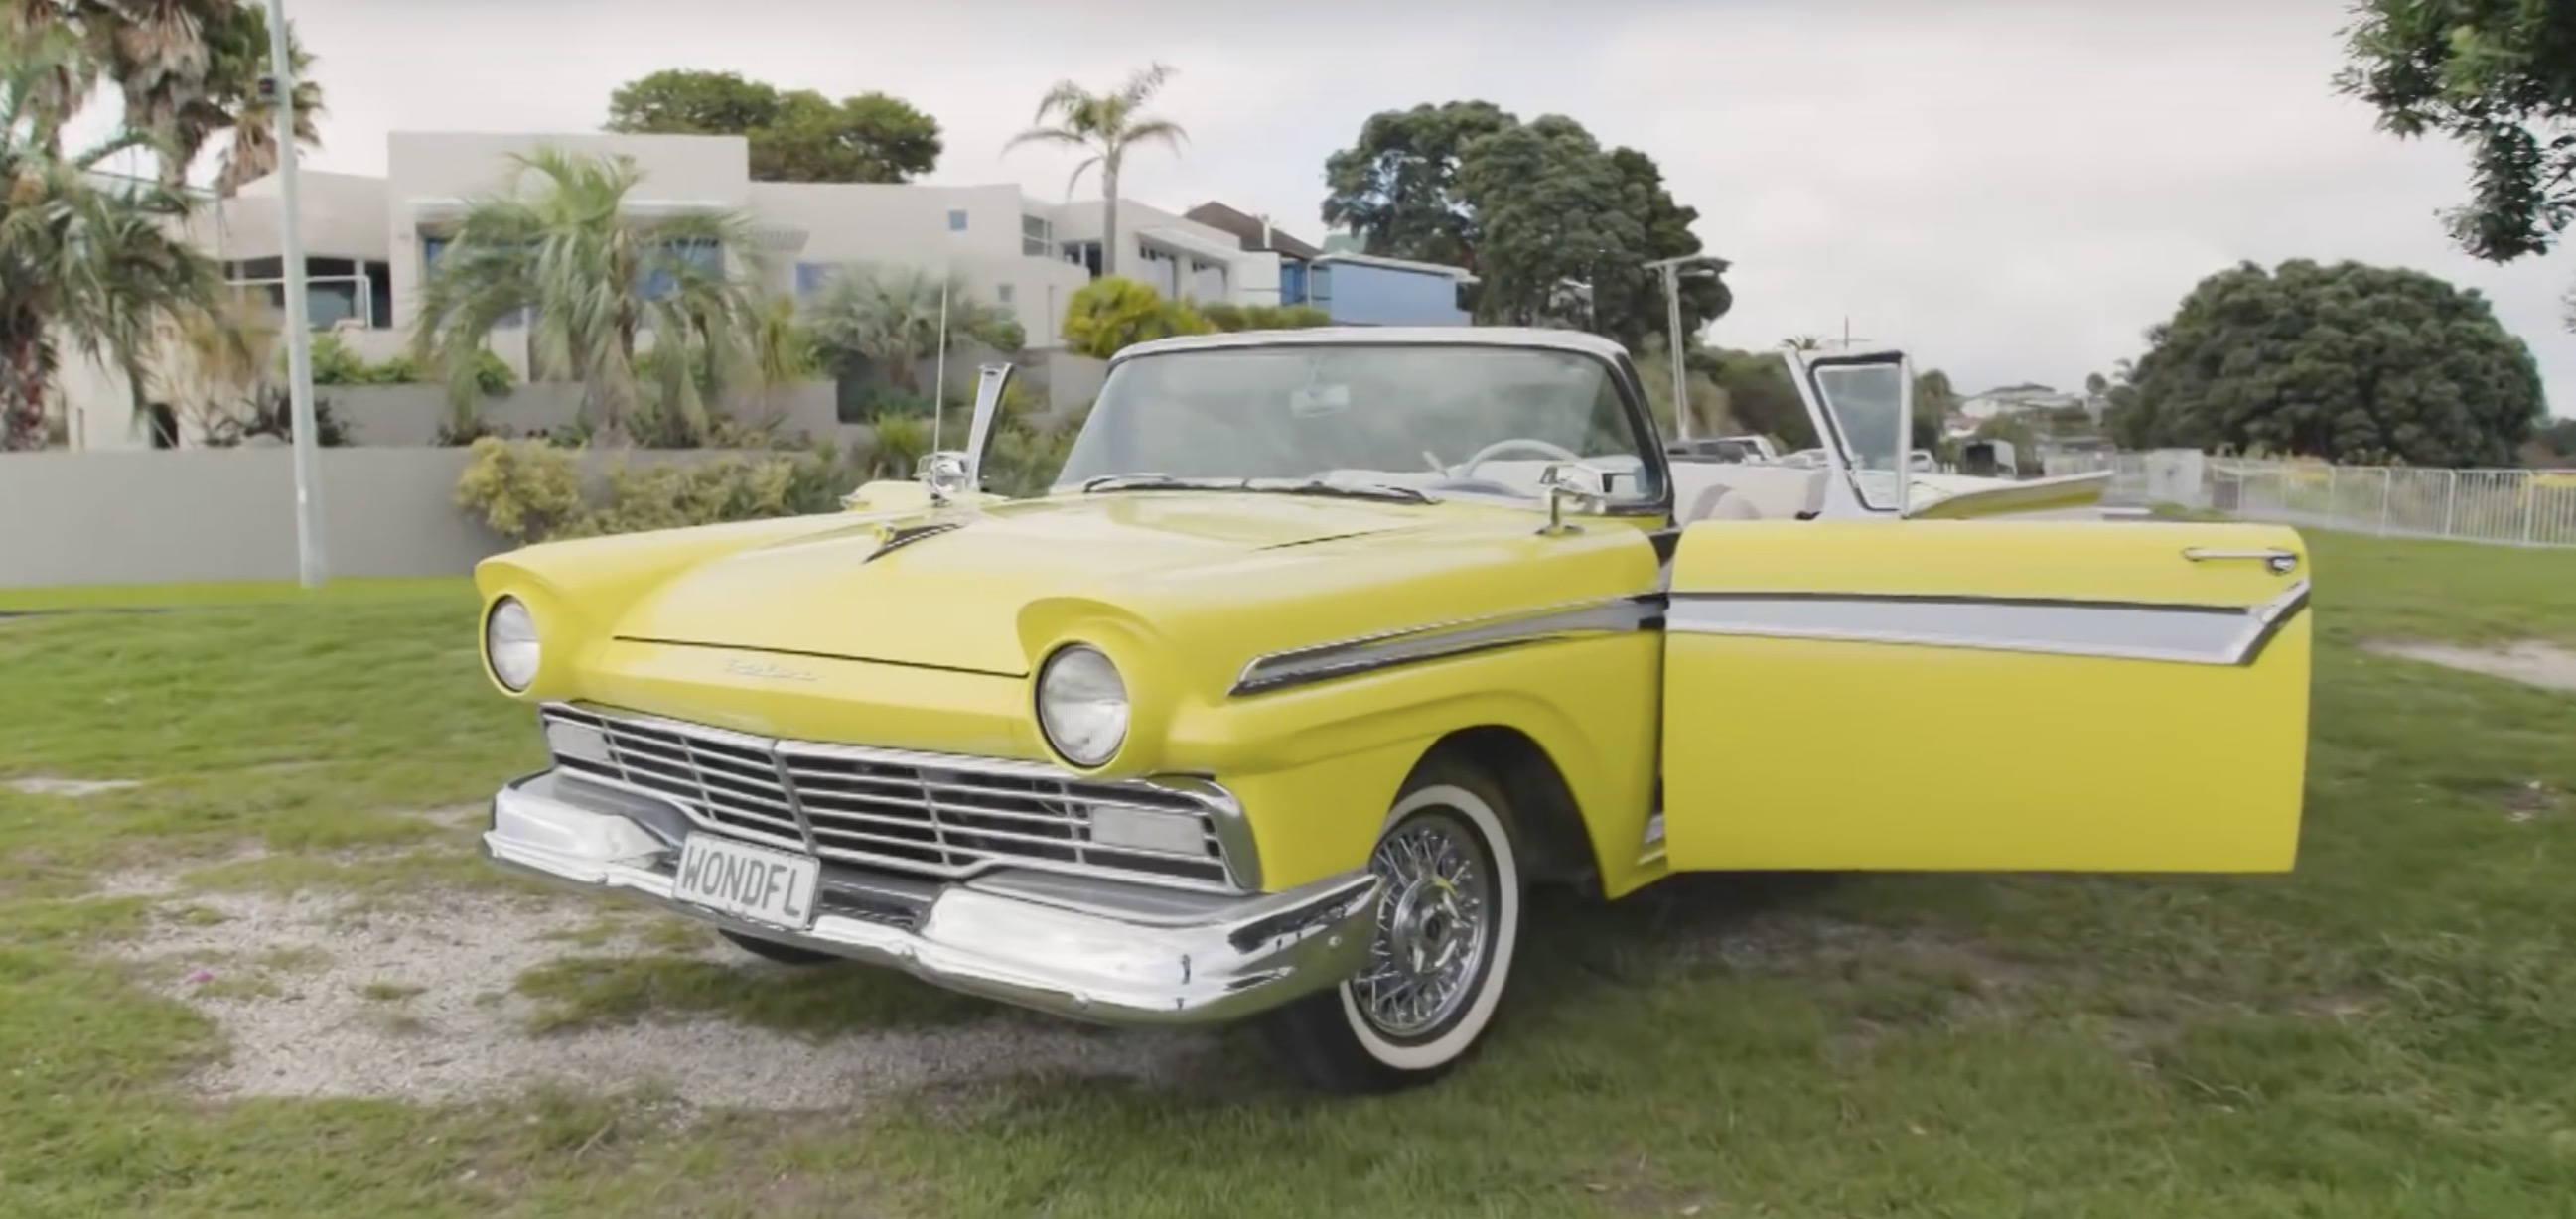 A classic 1957 Ford Fairlane goes all-electric with a 50 kWh battery pack